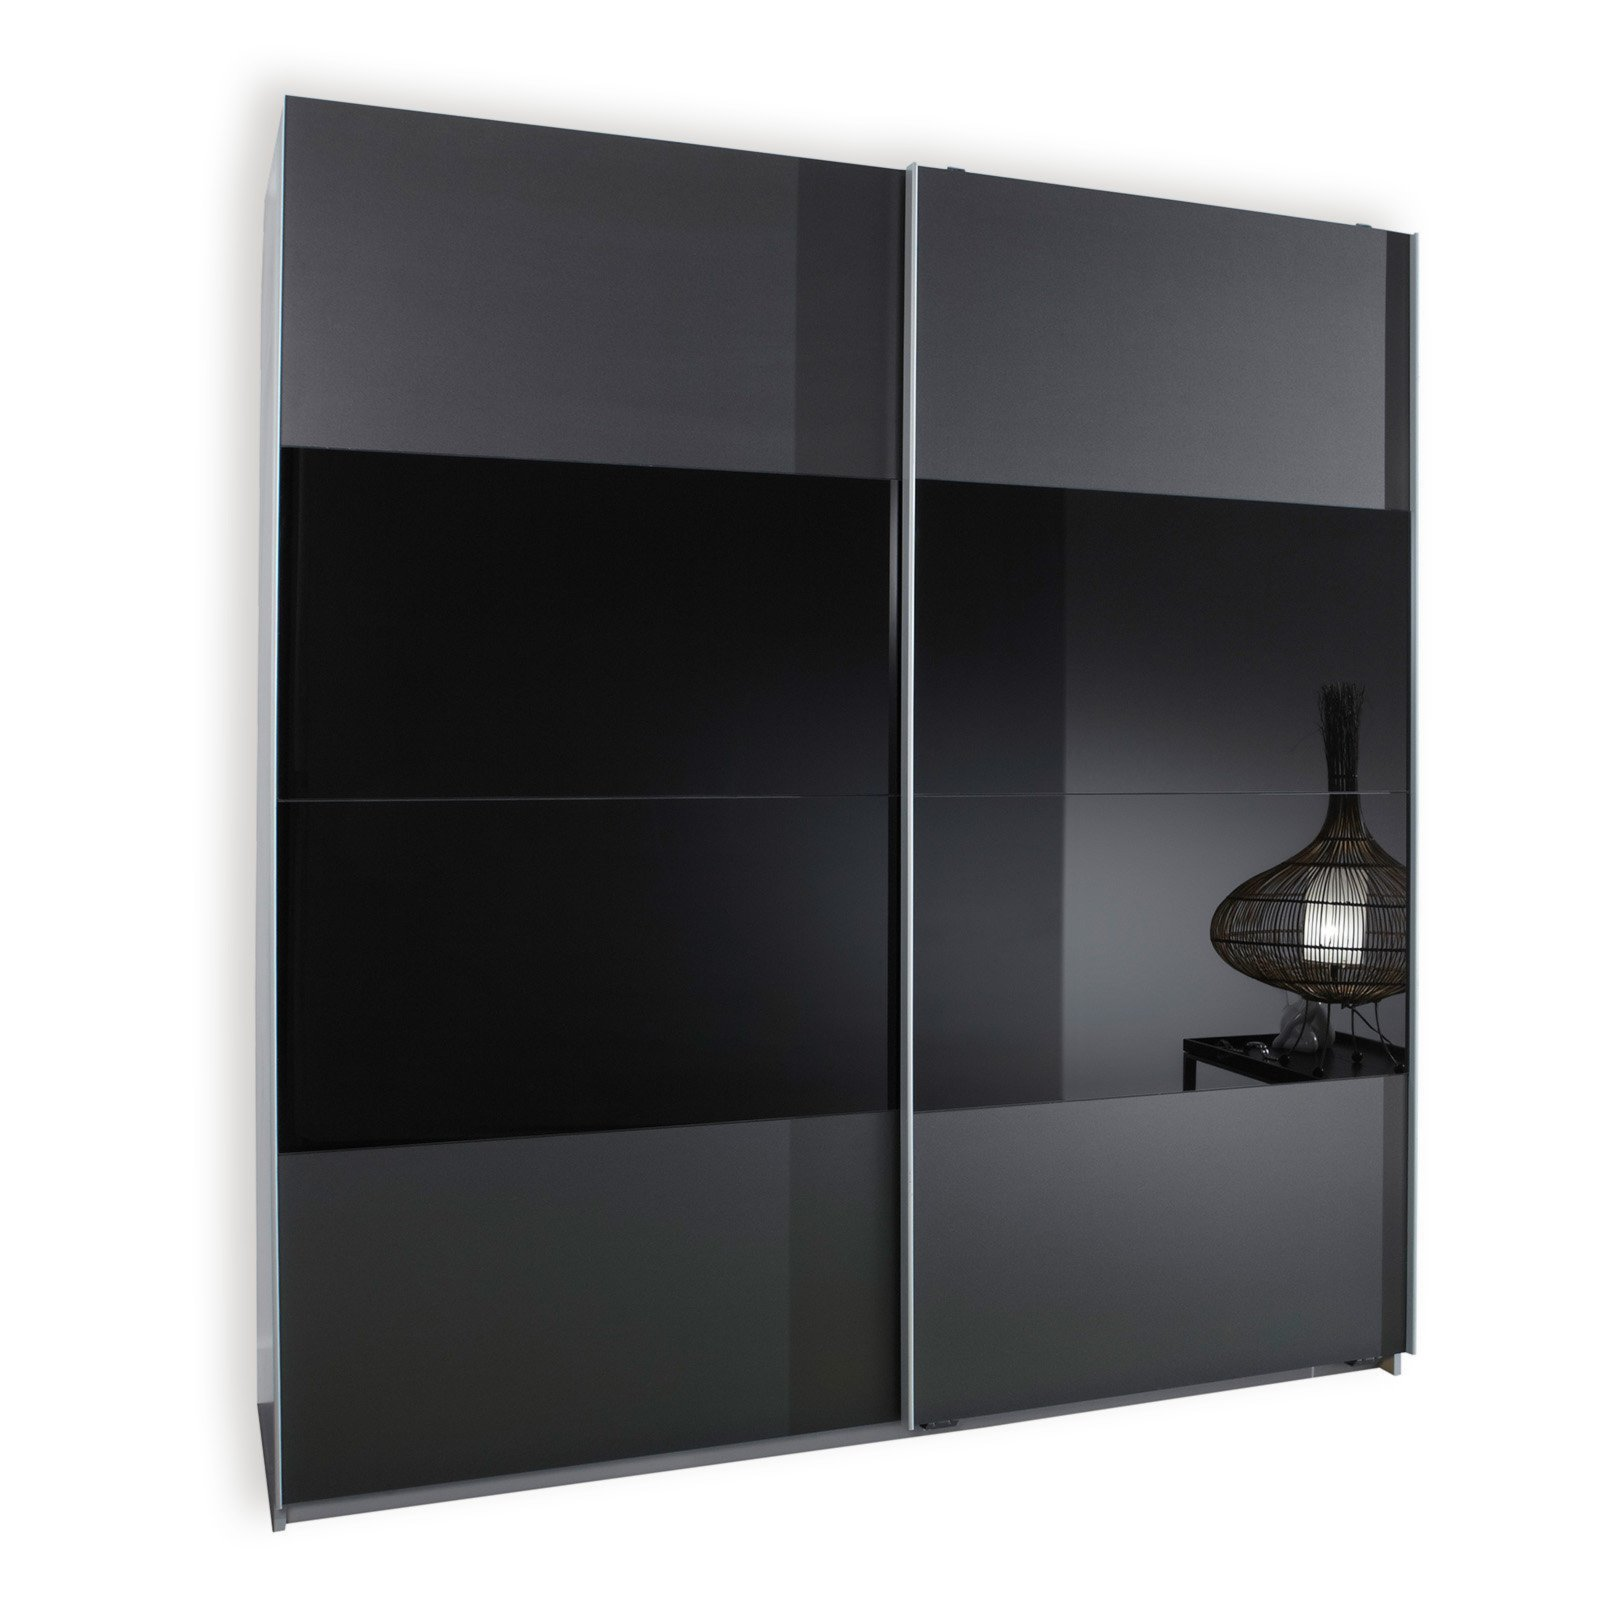 schwebet renschrank enter anthrazit 179 cm breit. Black Bedroom Furniture Sets. Home Design Ideas